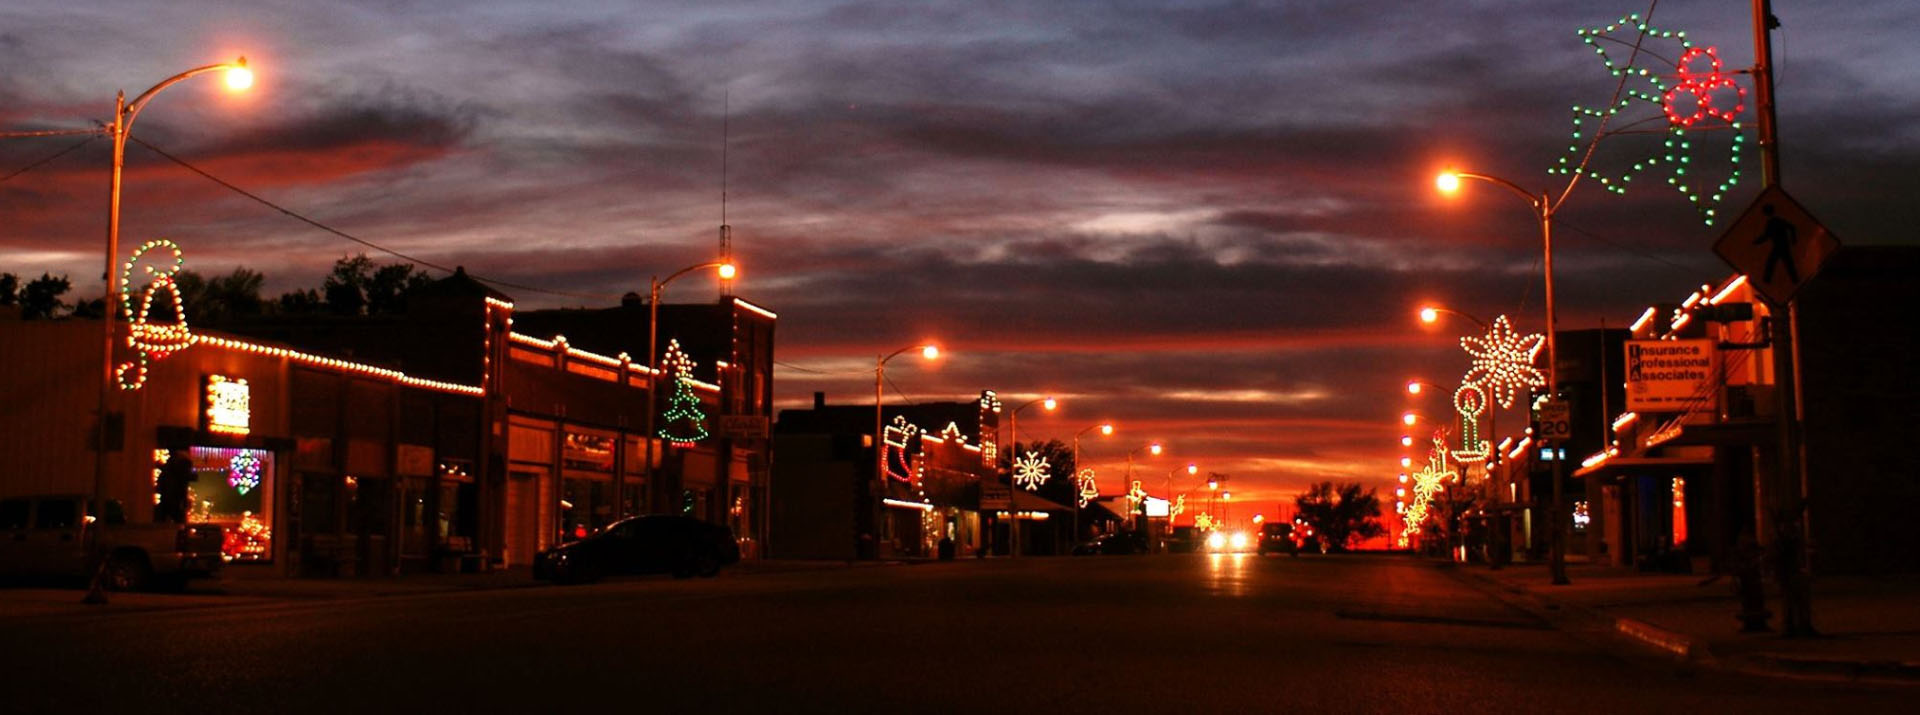 Main Street with Christmas Lights